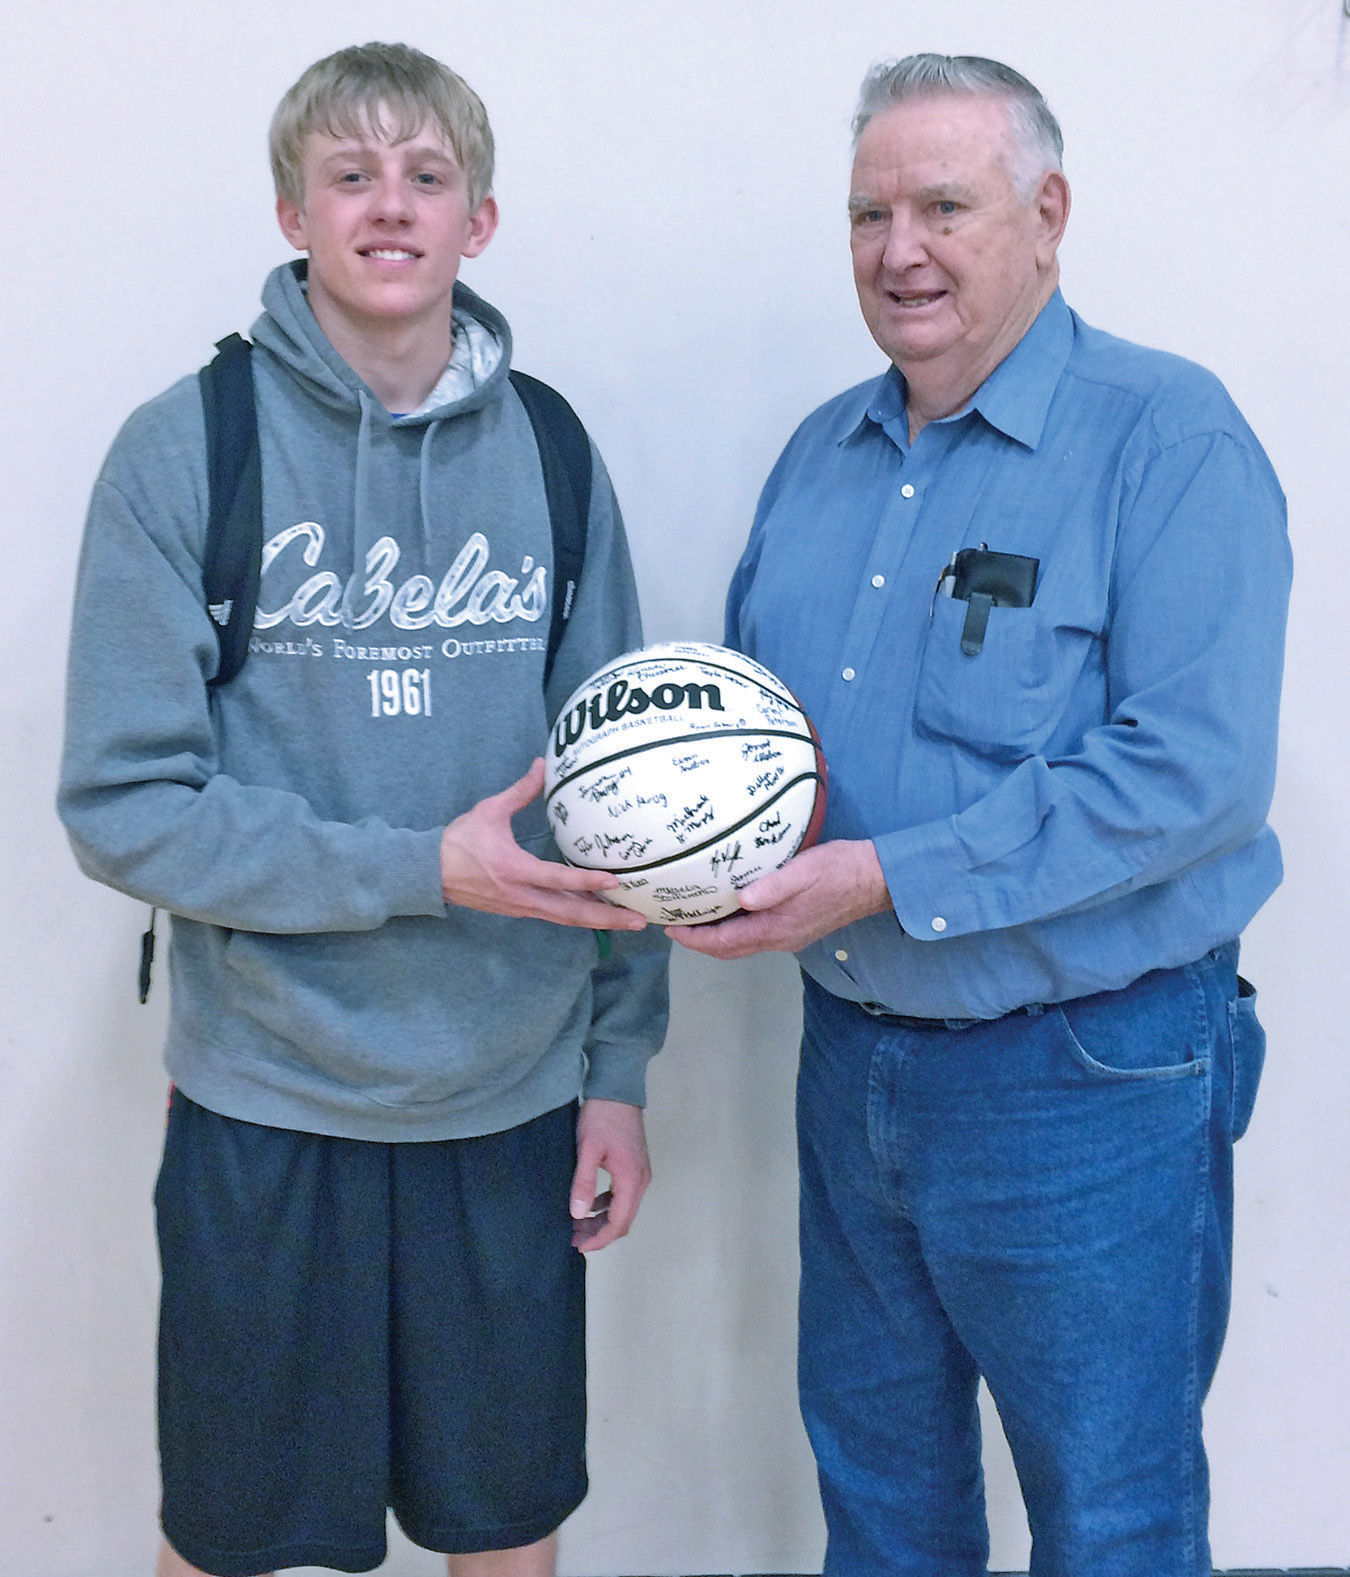 Dillon Moore and his grandfather, Howard Moore, after the area High School All- Star games held in Tea, SD on Sunday, April 3.